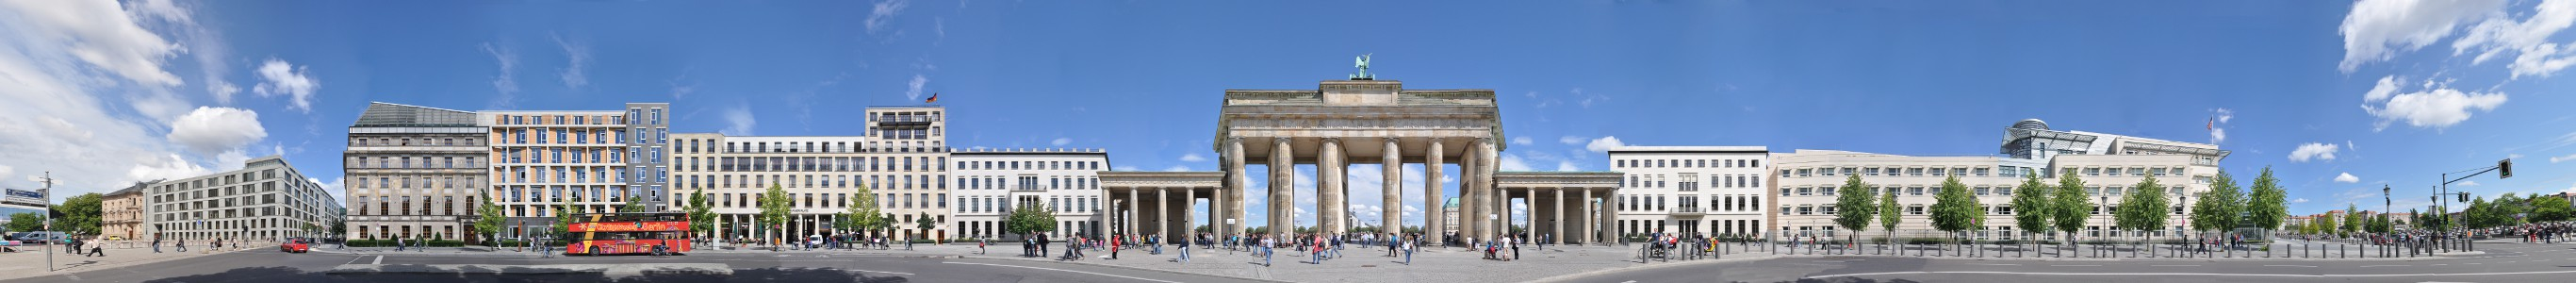 Brandenburg Gate – Ebertstrasse • Berlin • Germany